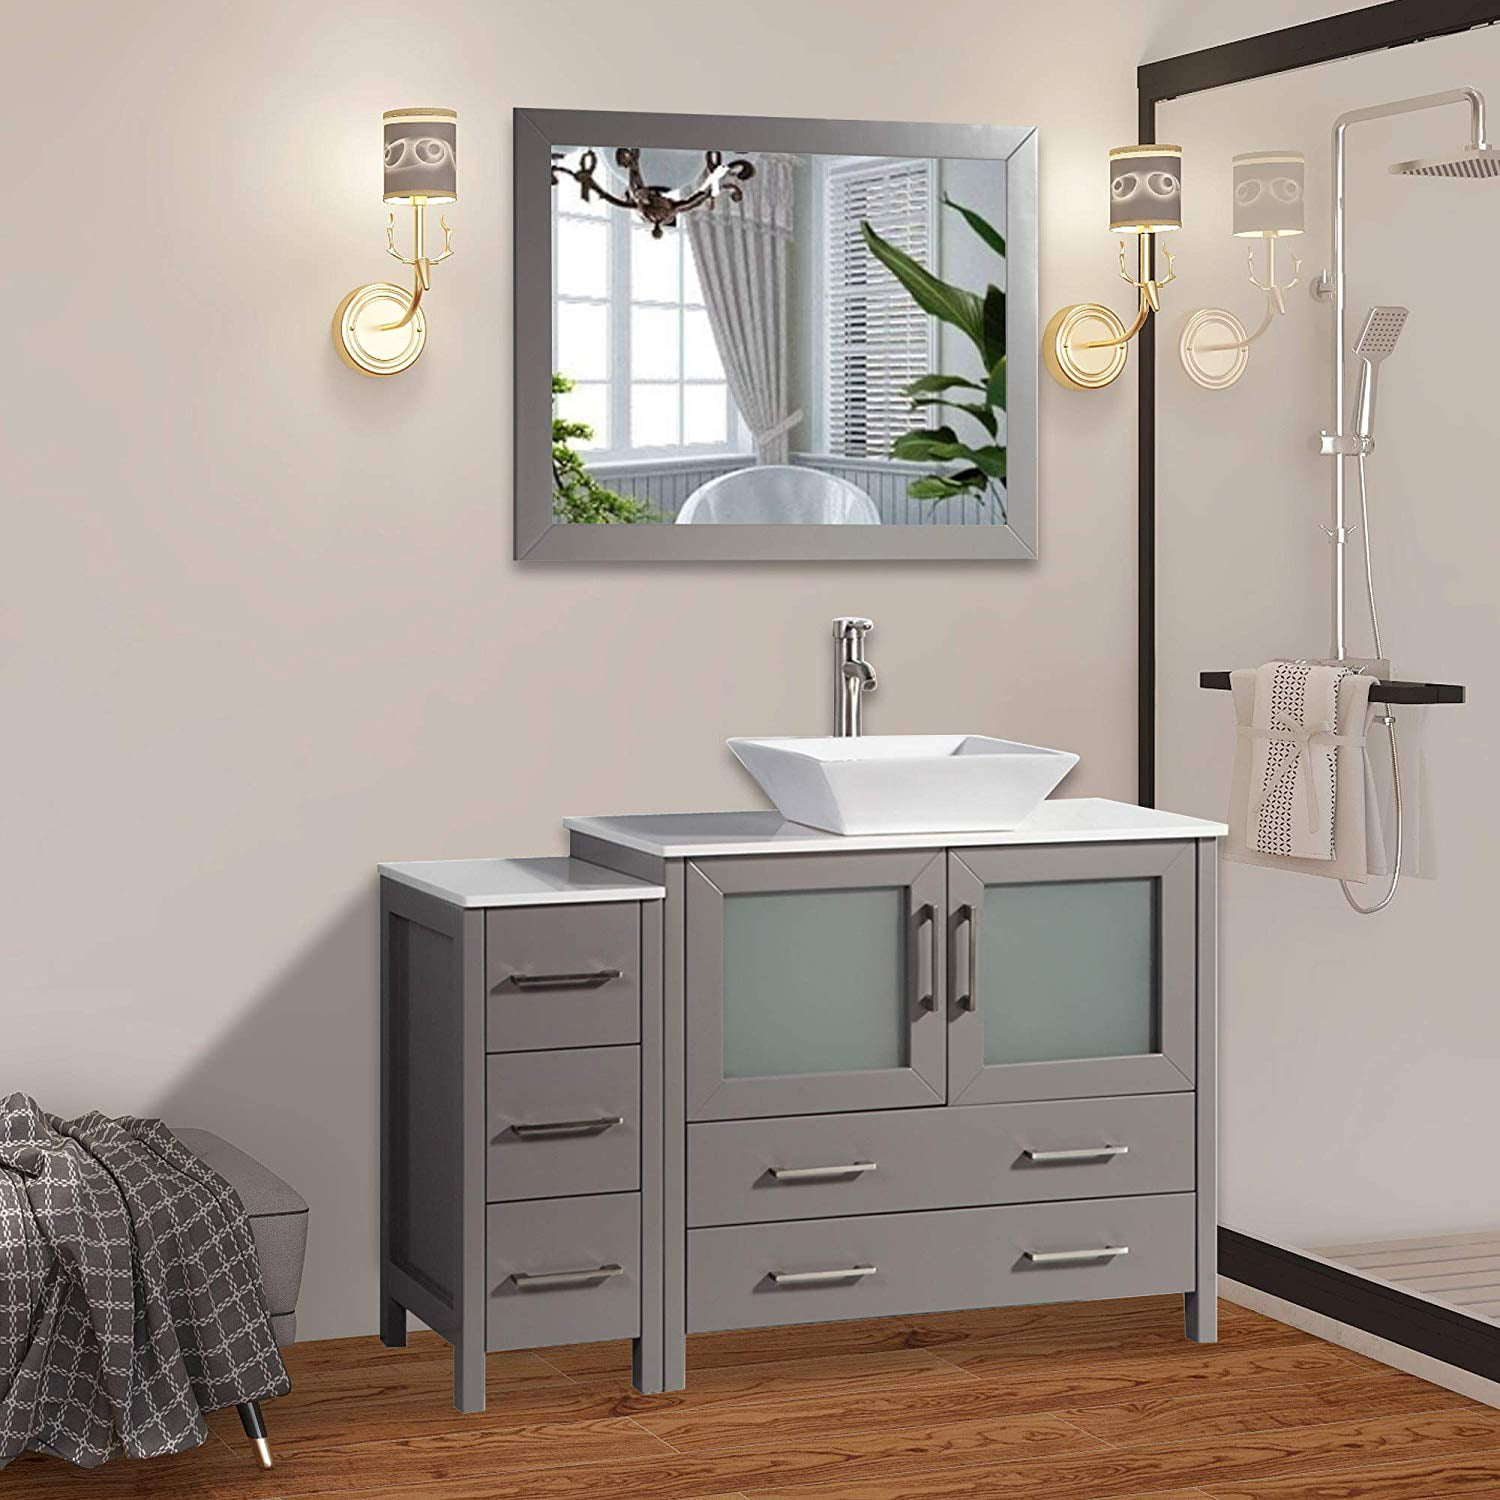 Vanity Art 48 Inch Single Sink Bathroom Vanity Combo Set ...